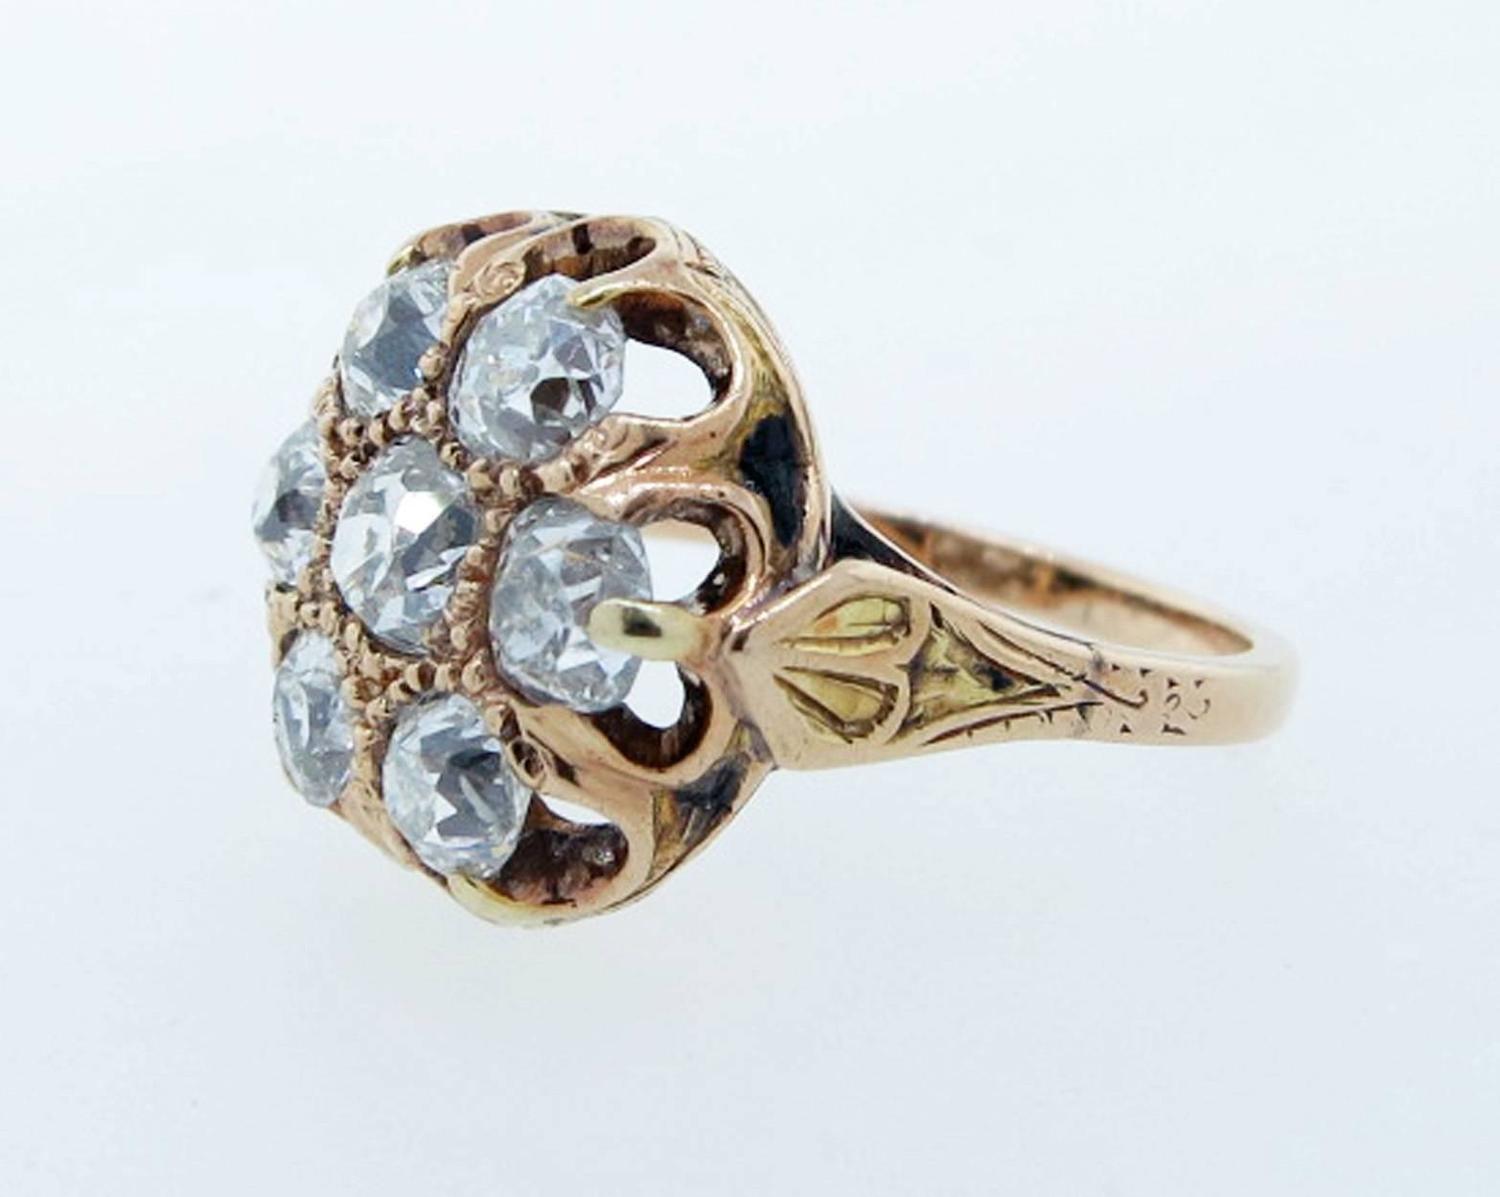 Antique Victorian Diamond Cluster Ring For Sale at 1stdibs